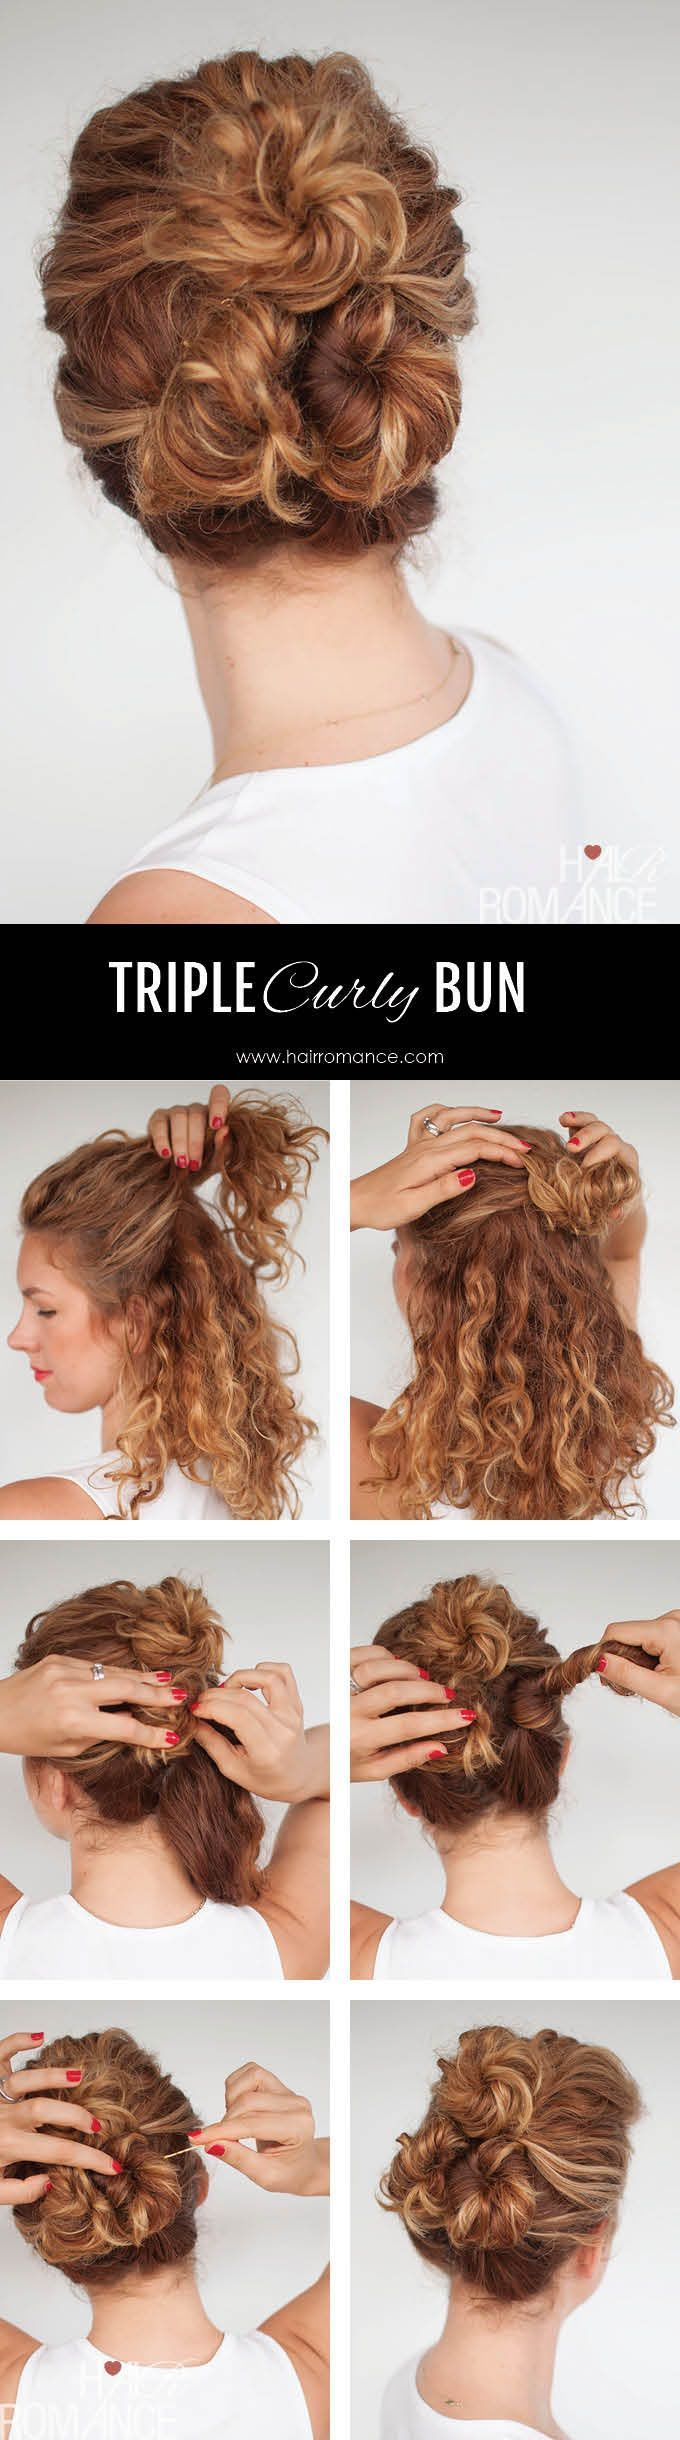 Hair Romance Easy Everyday Curly Hairstyle Tutorials The Curly Triple Bun Hair Styles Hair Romance Curly Hair Styles